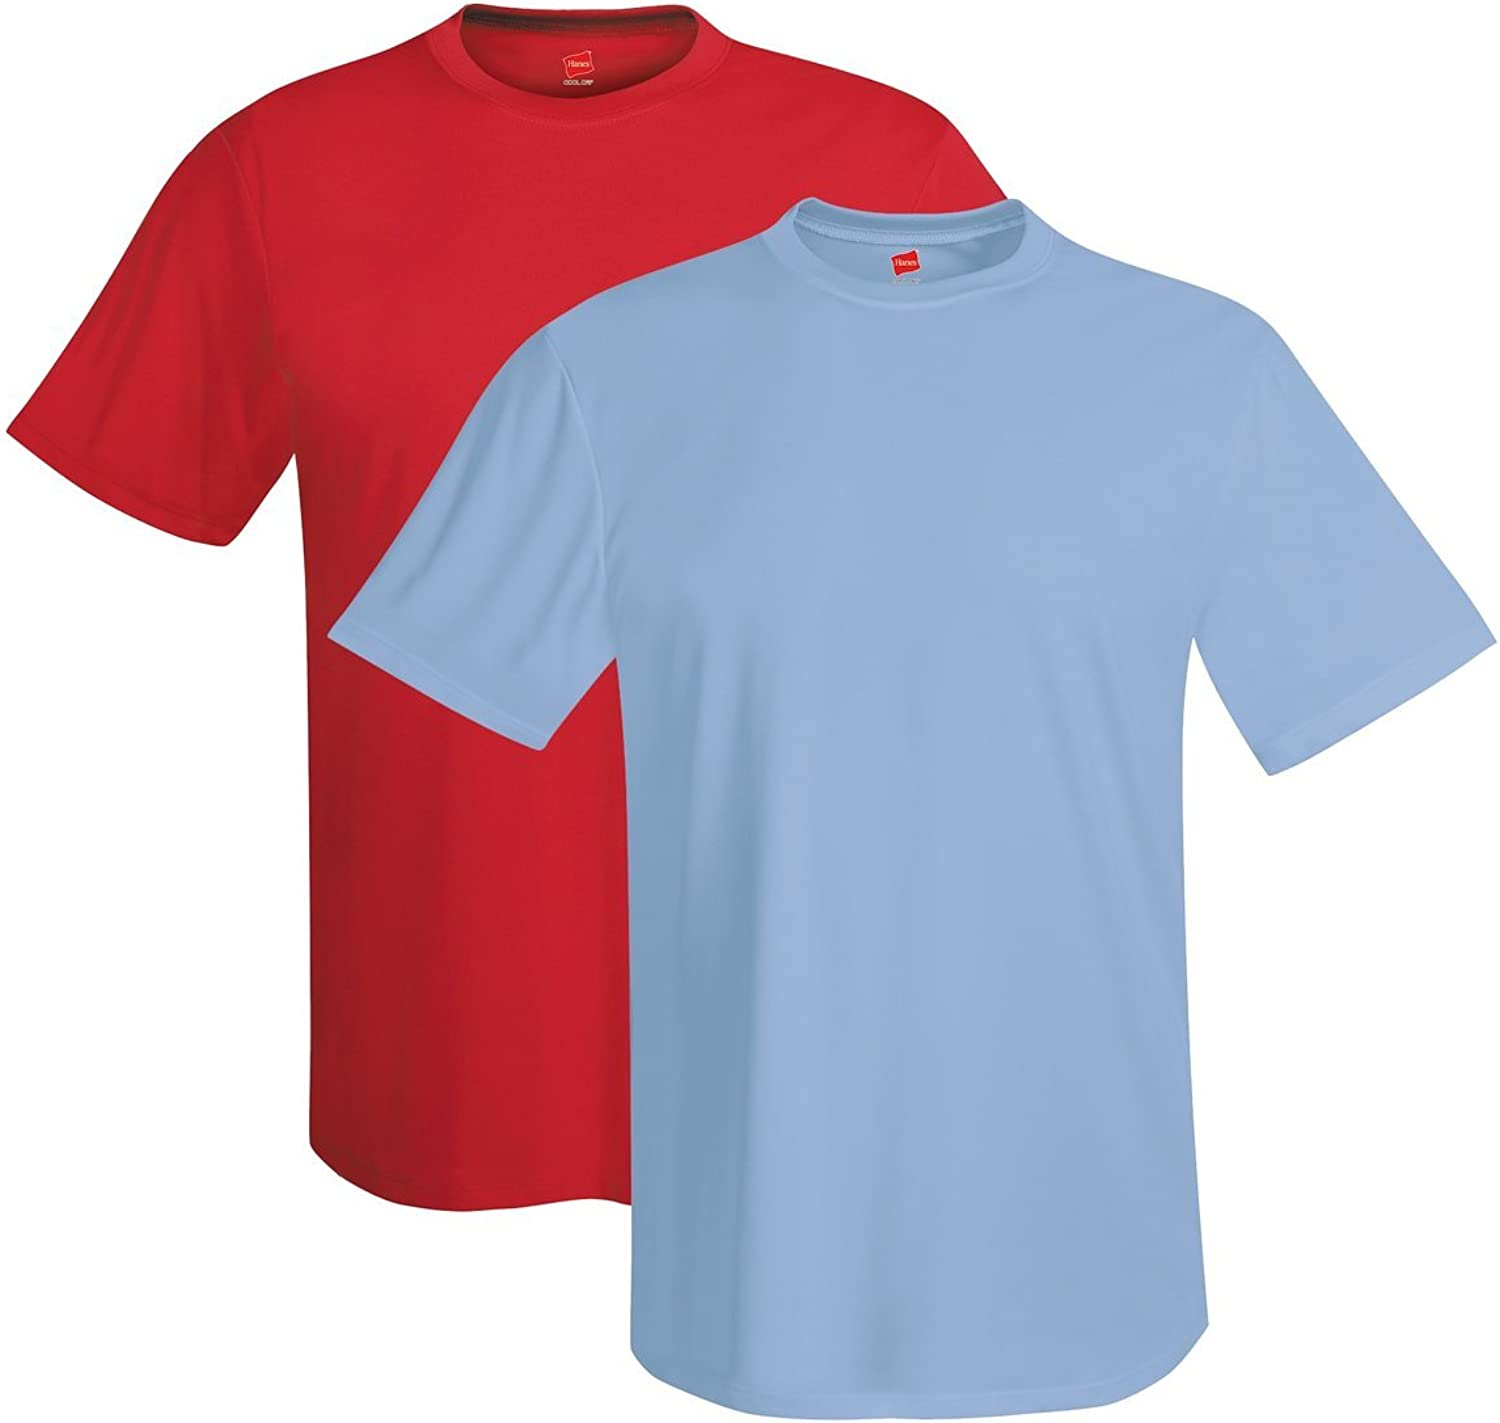 Hanes Men's Short Sleeve Cool DRI T-Shirt UPF 50+, RE LB, XX-Large (Pack of 2)